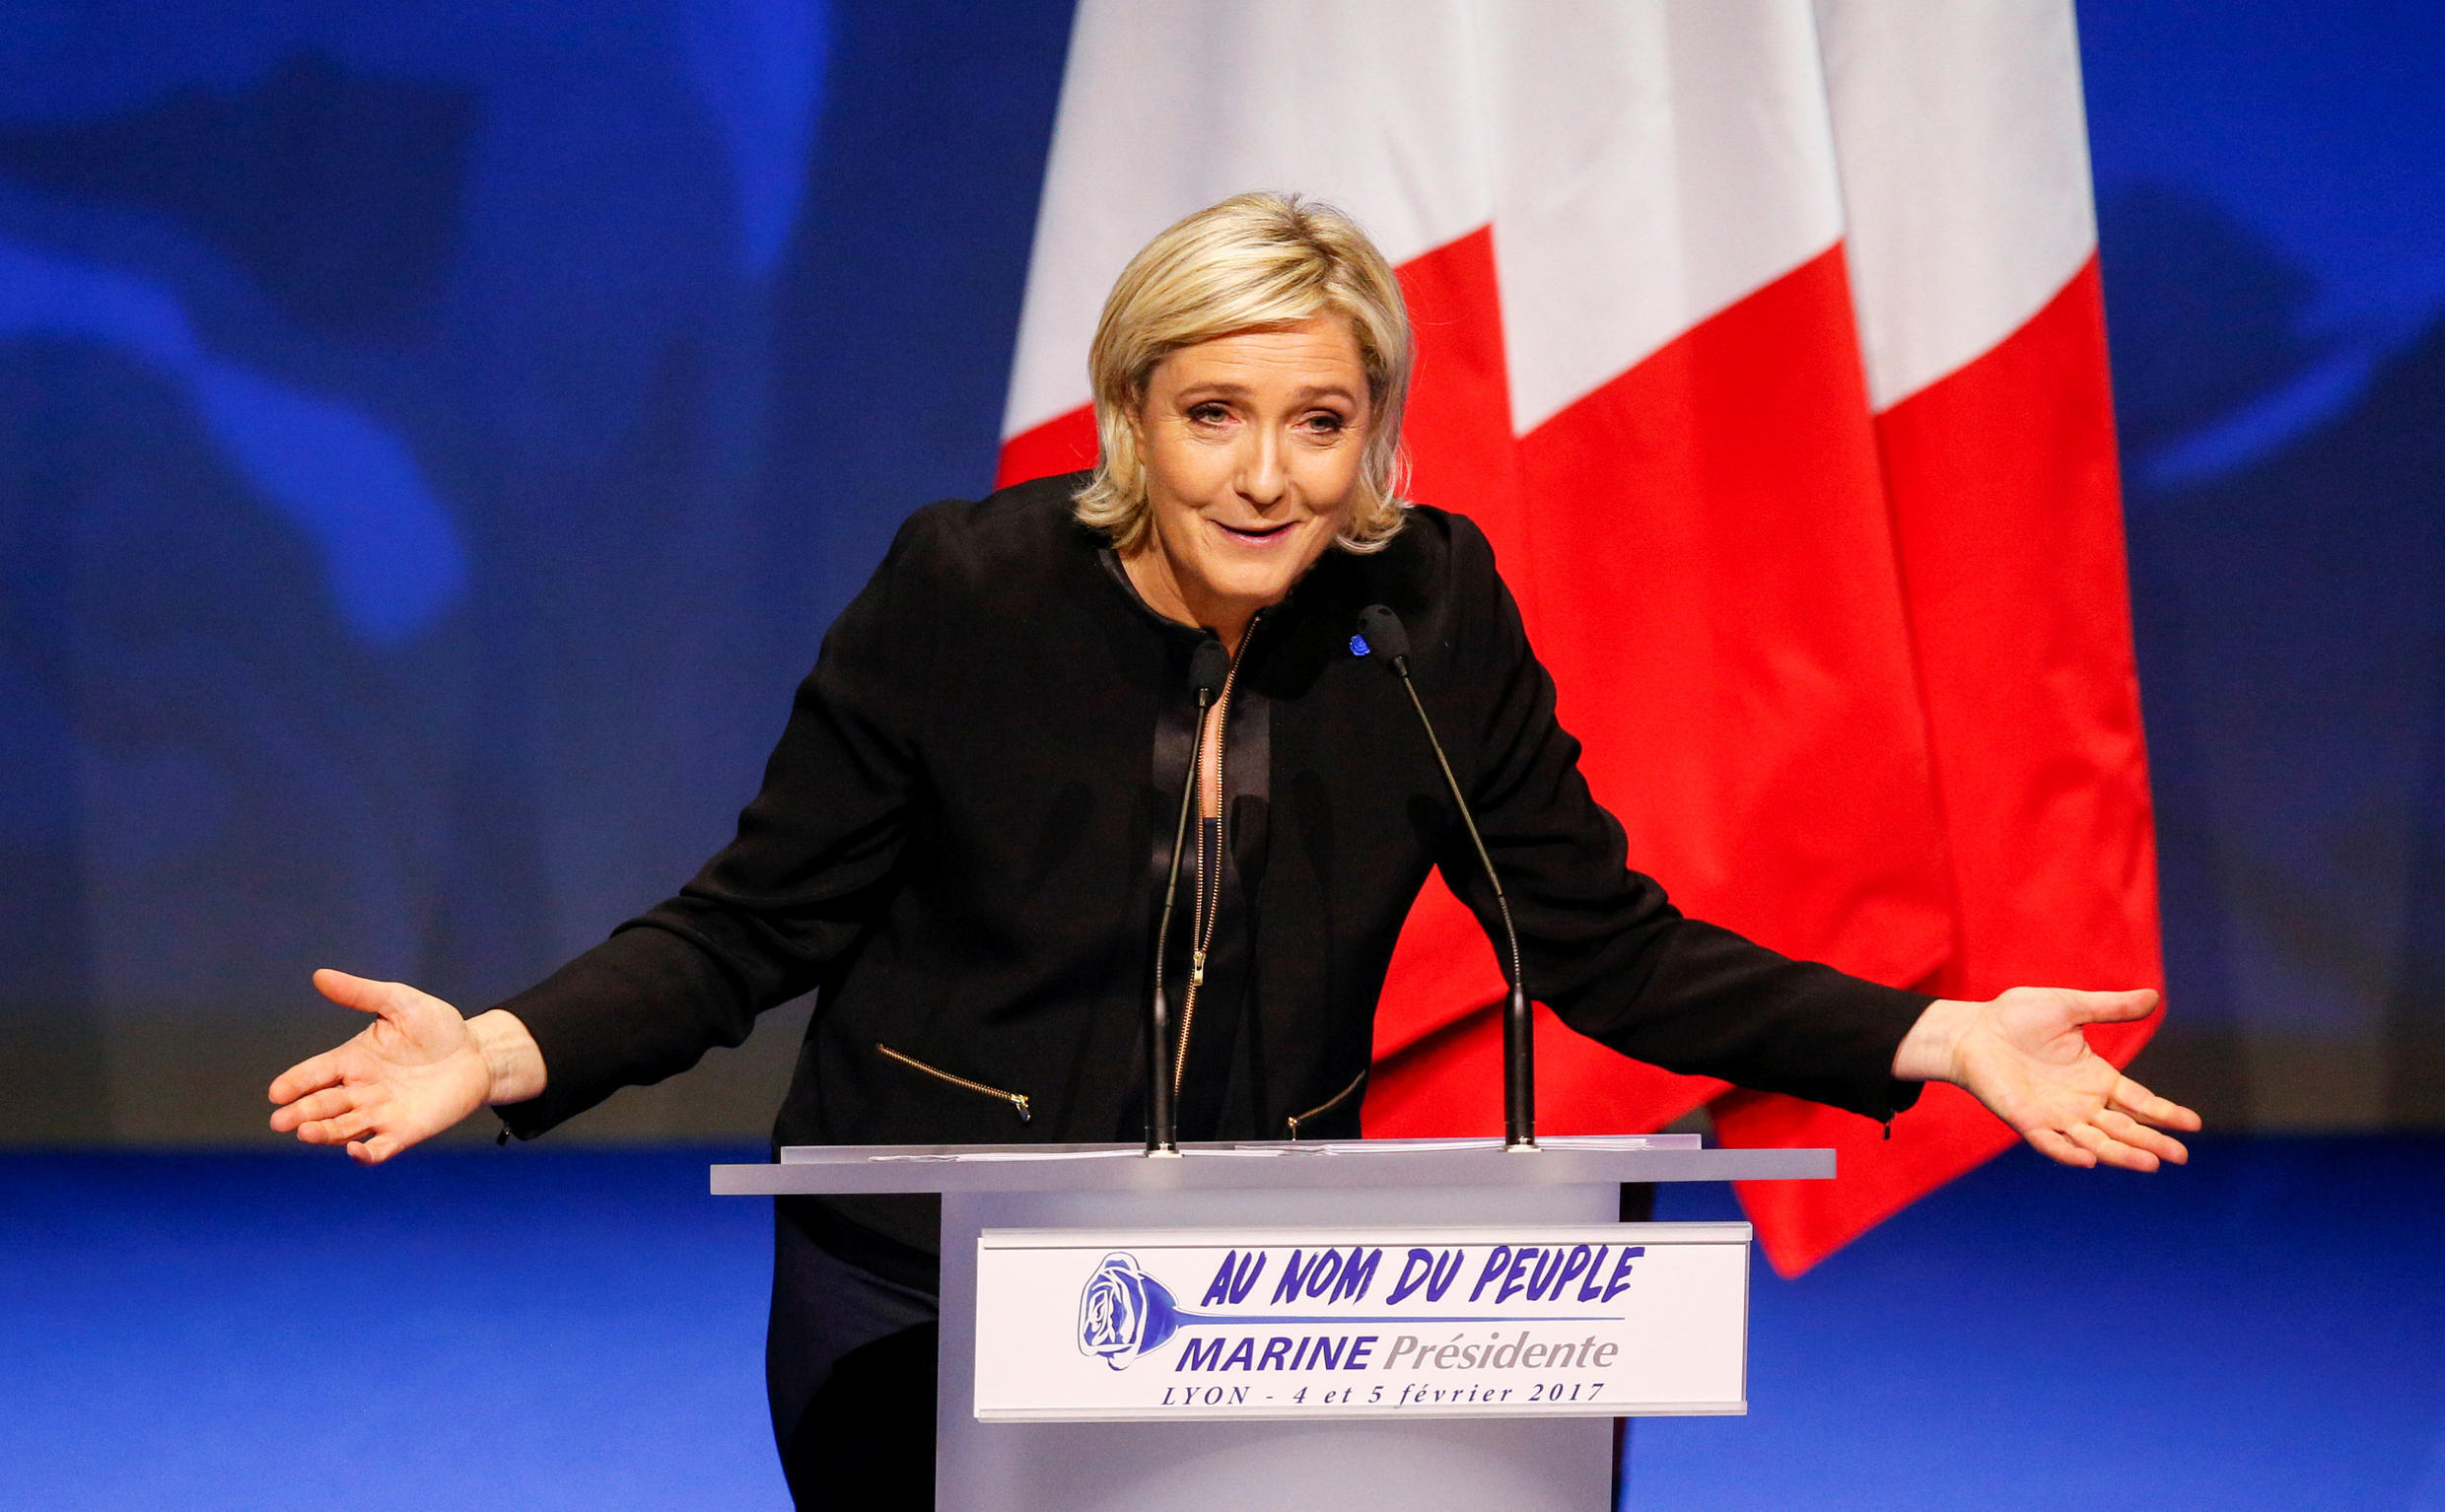 National Front presidential candidate Marine Le Pen launches her presidential campaign in Lyon earlier this month